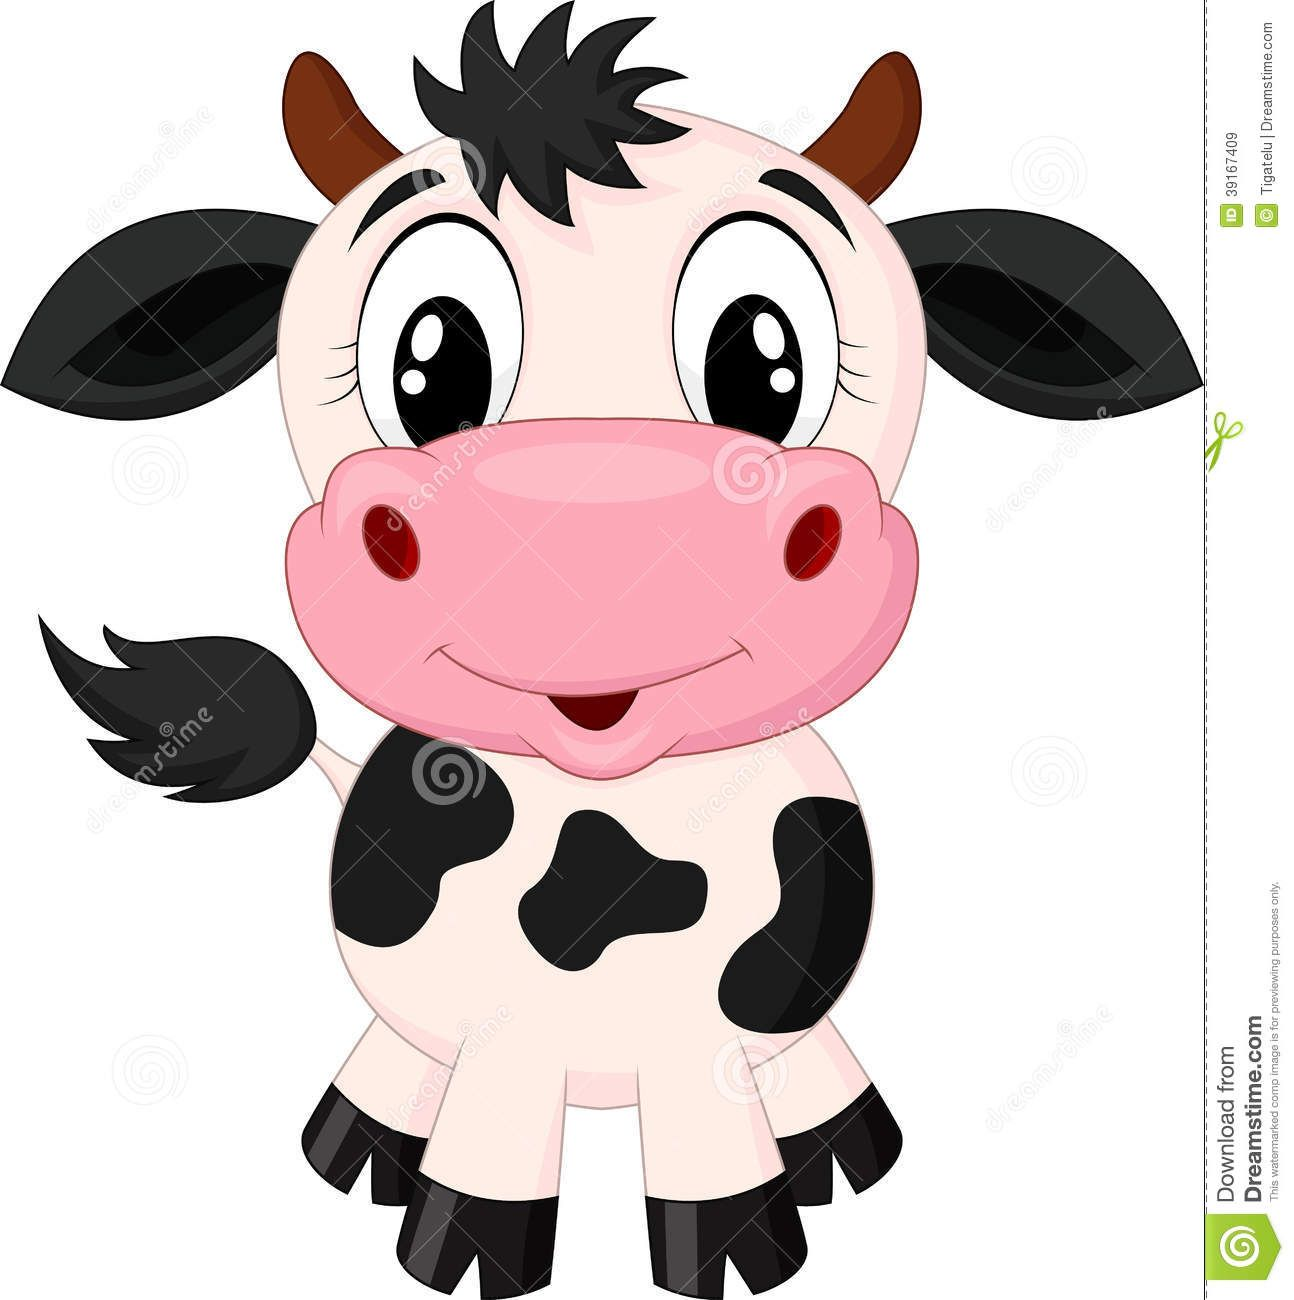 Pin by Sandy Coffman on ALL COWS Mooo   Pinterest   Cow, Journaling ...